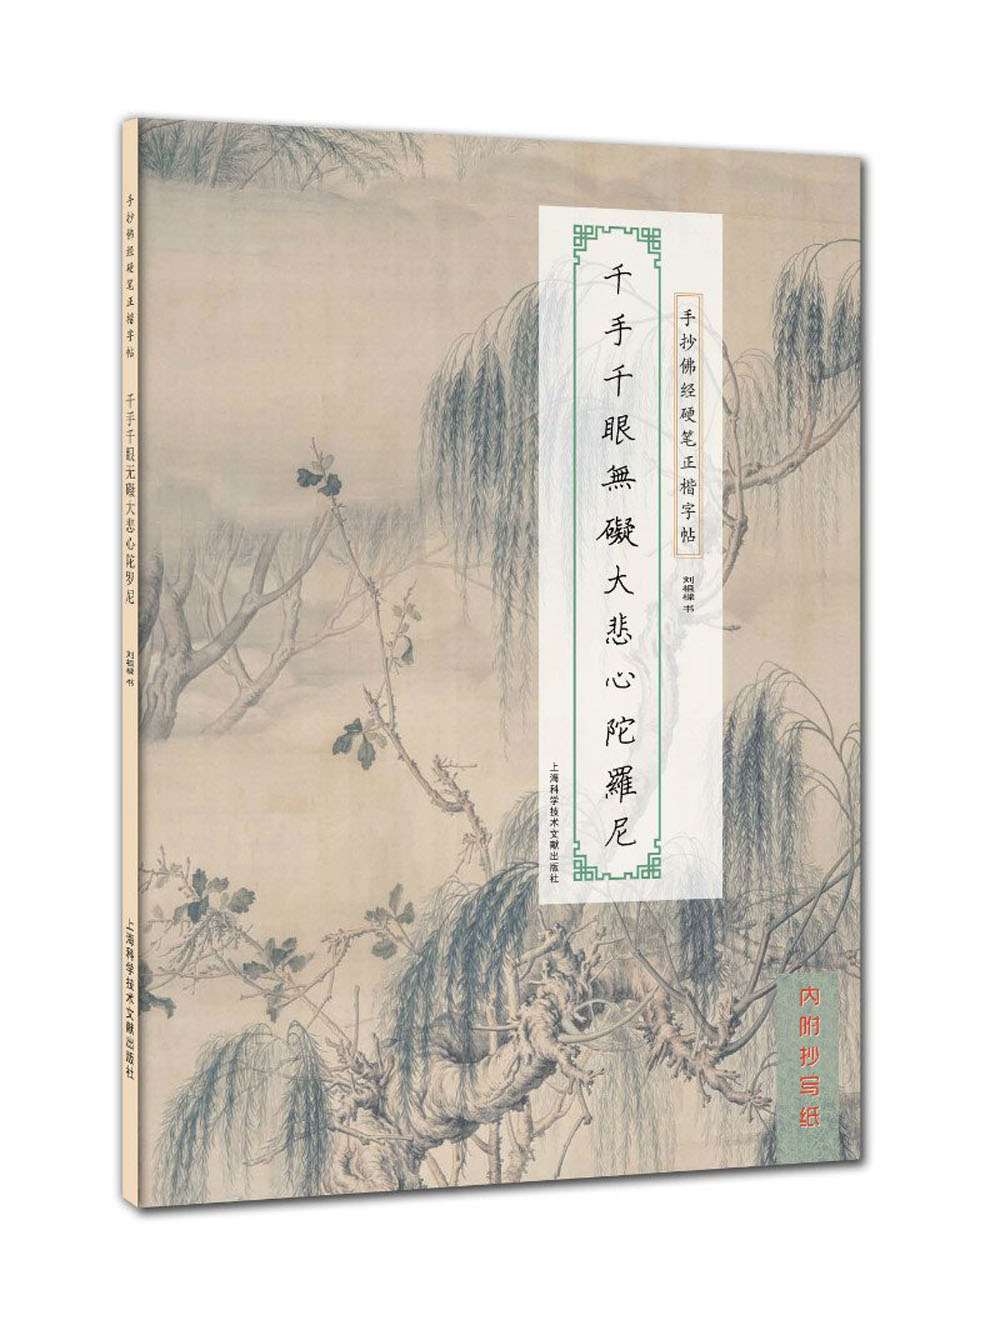 The handwritten Buddhist scriptures in pen copybook series : Qian Shou Wu Yan Da ning Da Bi Xin An luo Ning cai xigin wise men talking series yan zi says серия изречений великих мыслителей как говорил янь цзы…